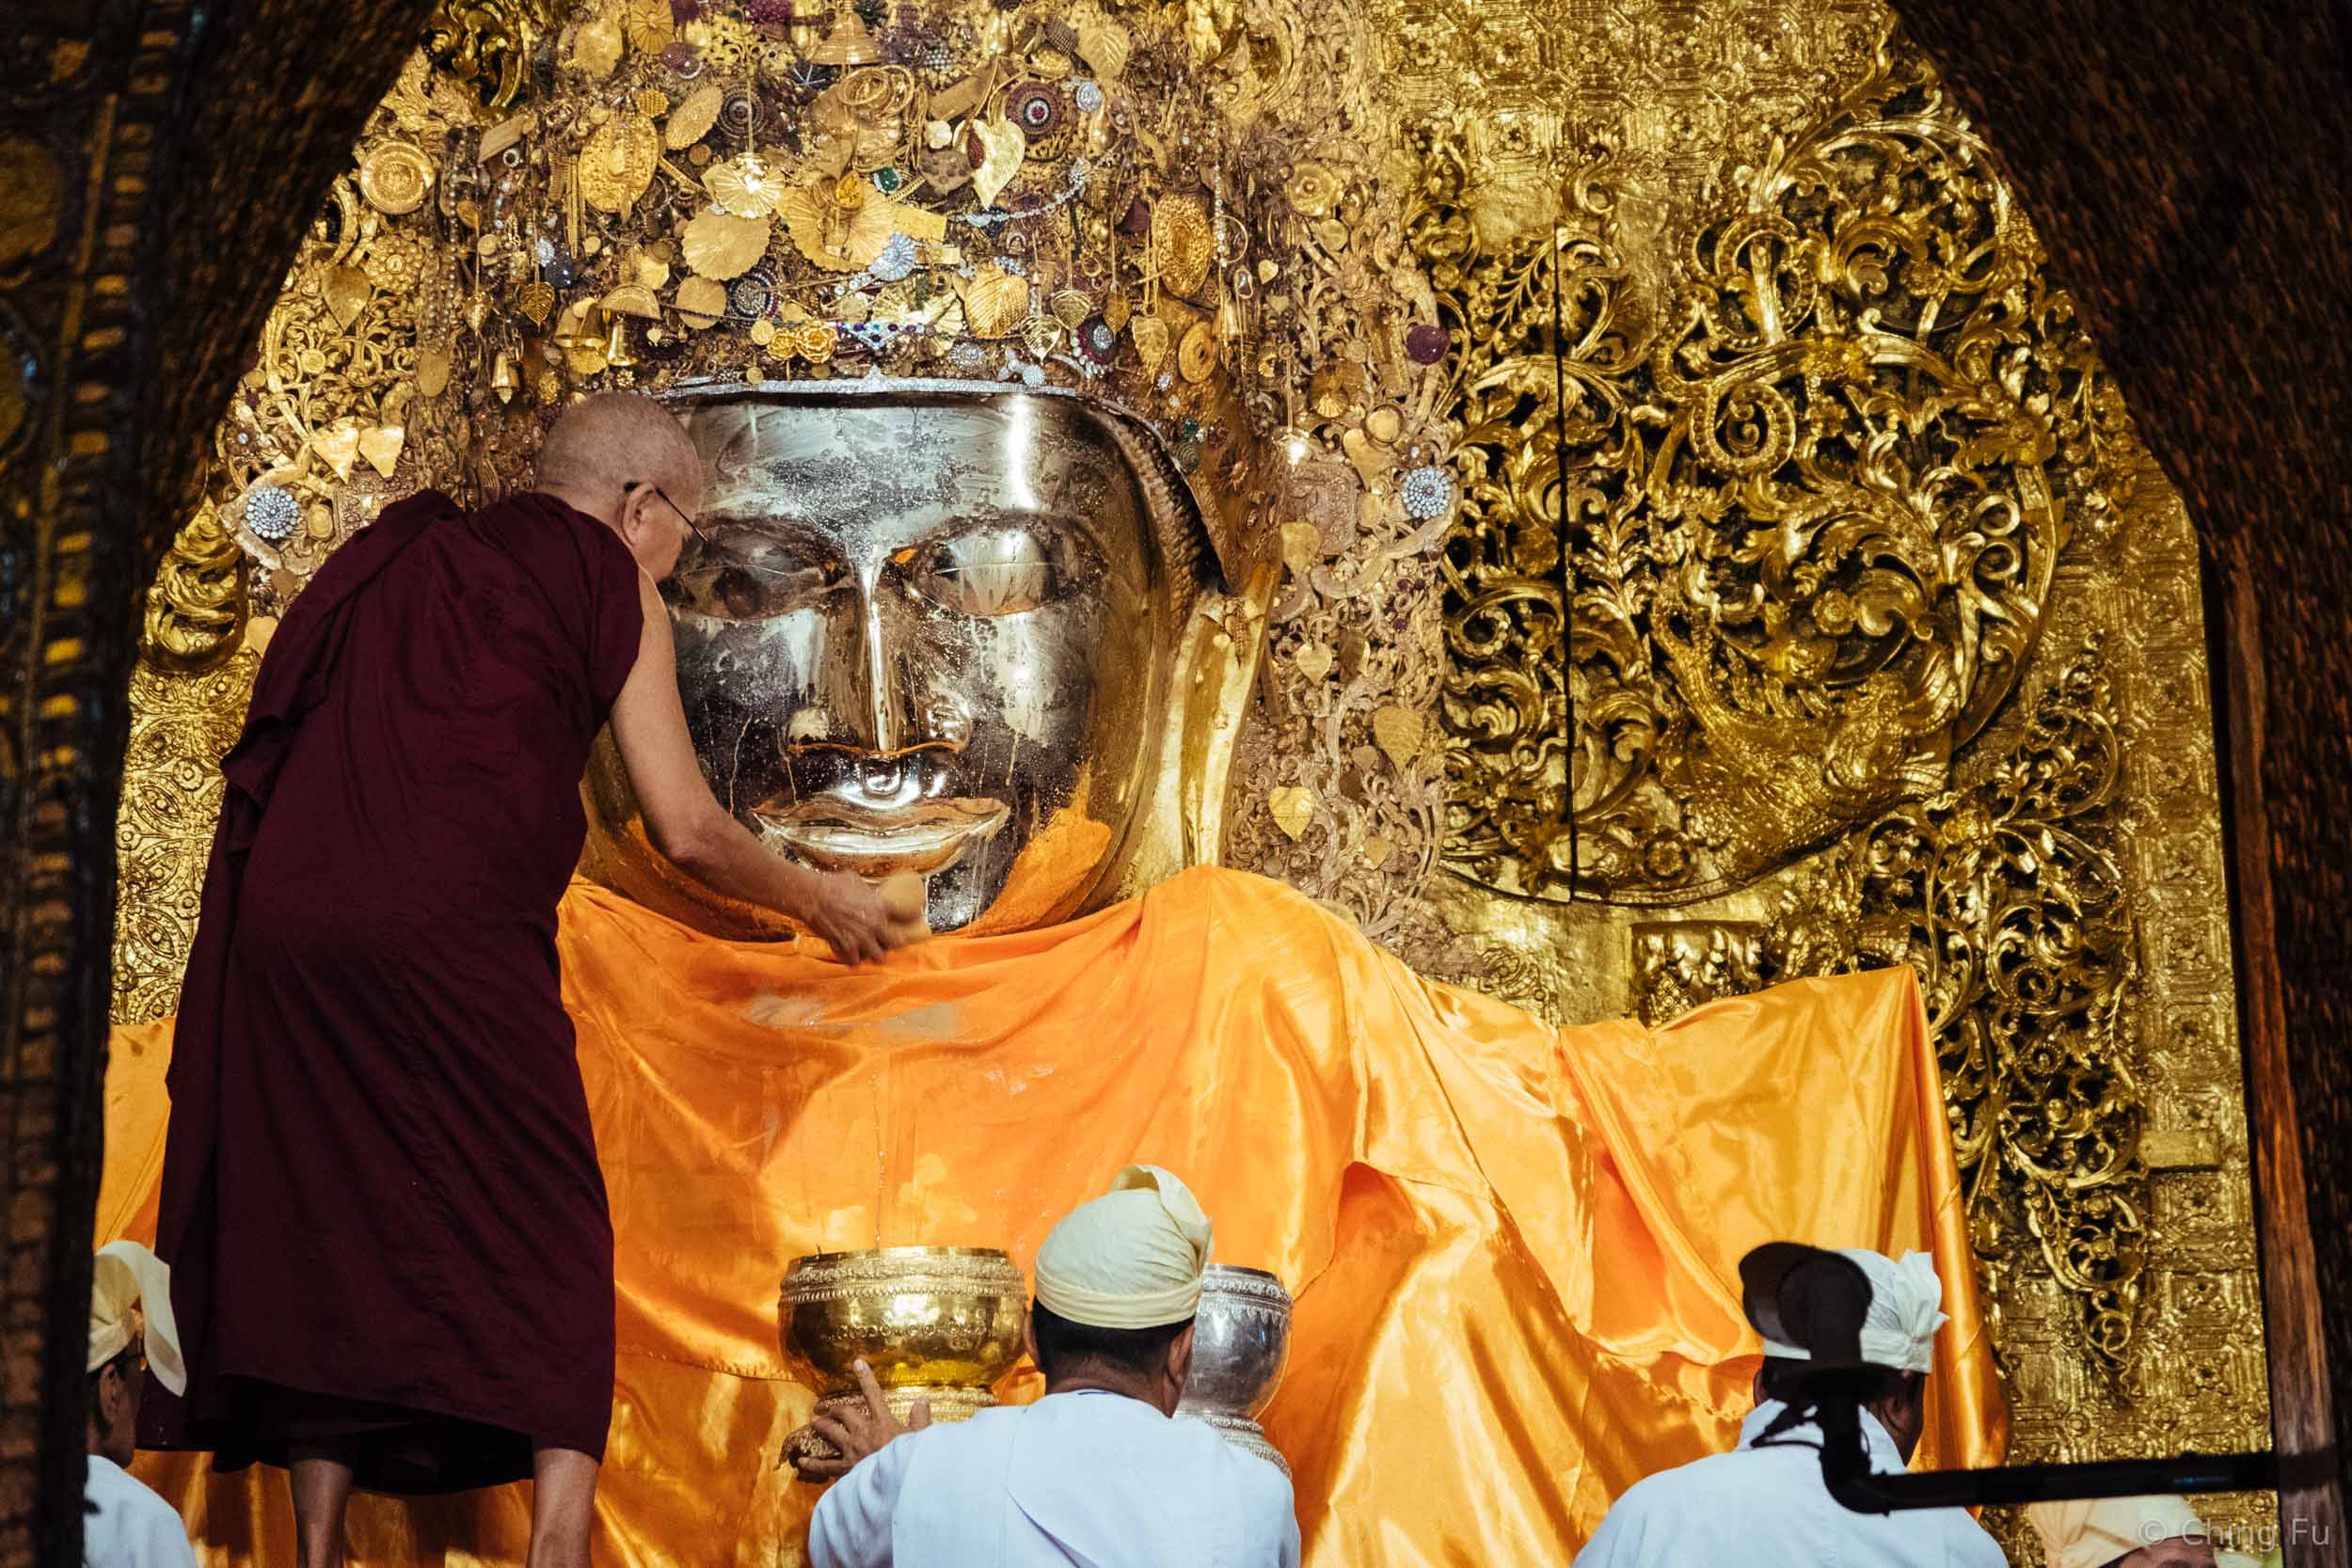 Gold leaves are frequently applied to Mahamuni Buddha by male devotees (only men are allowed in this room).